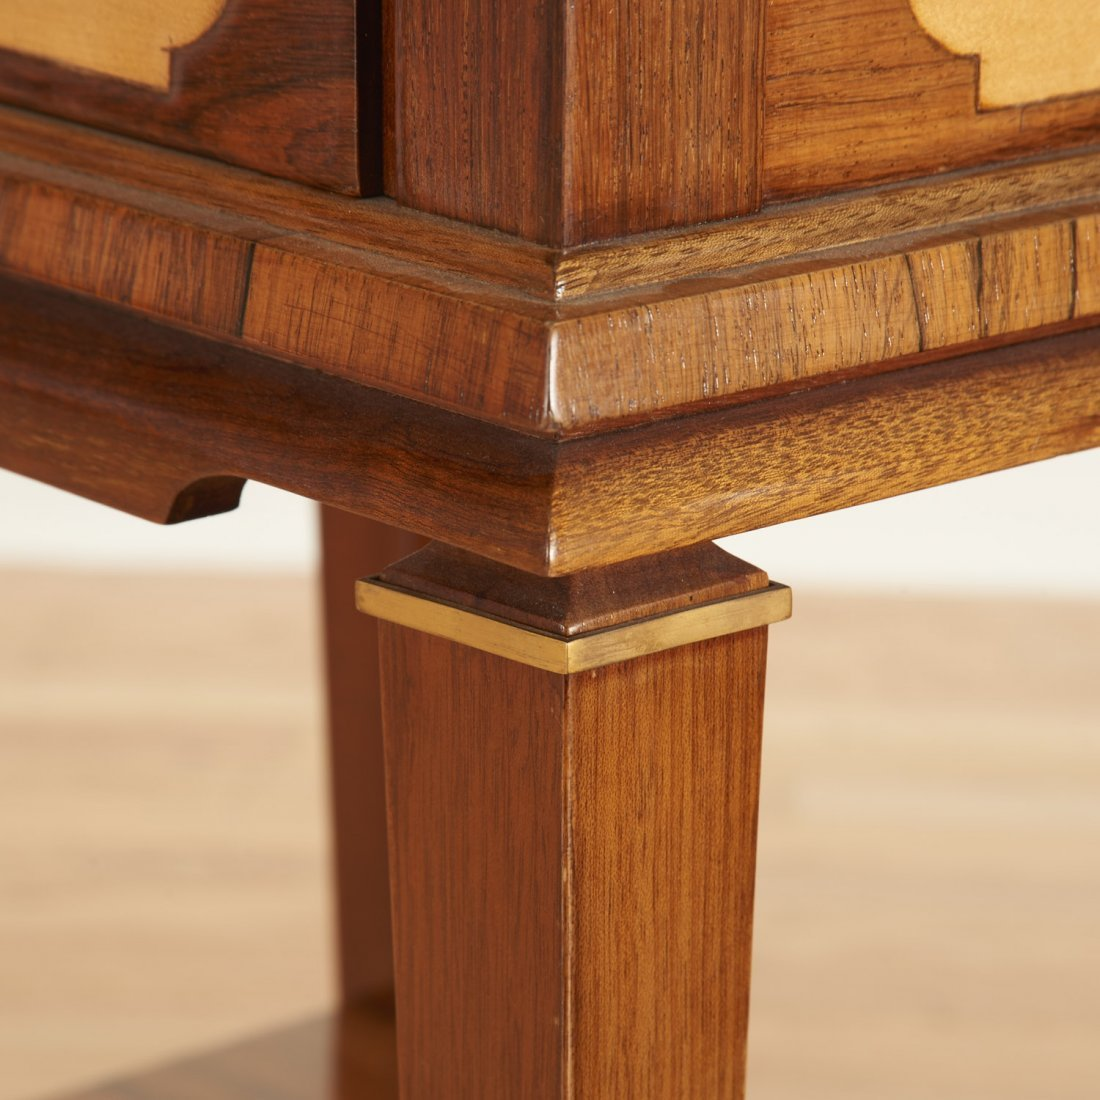 Manner Maxime Old near pair side tables - 8